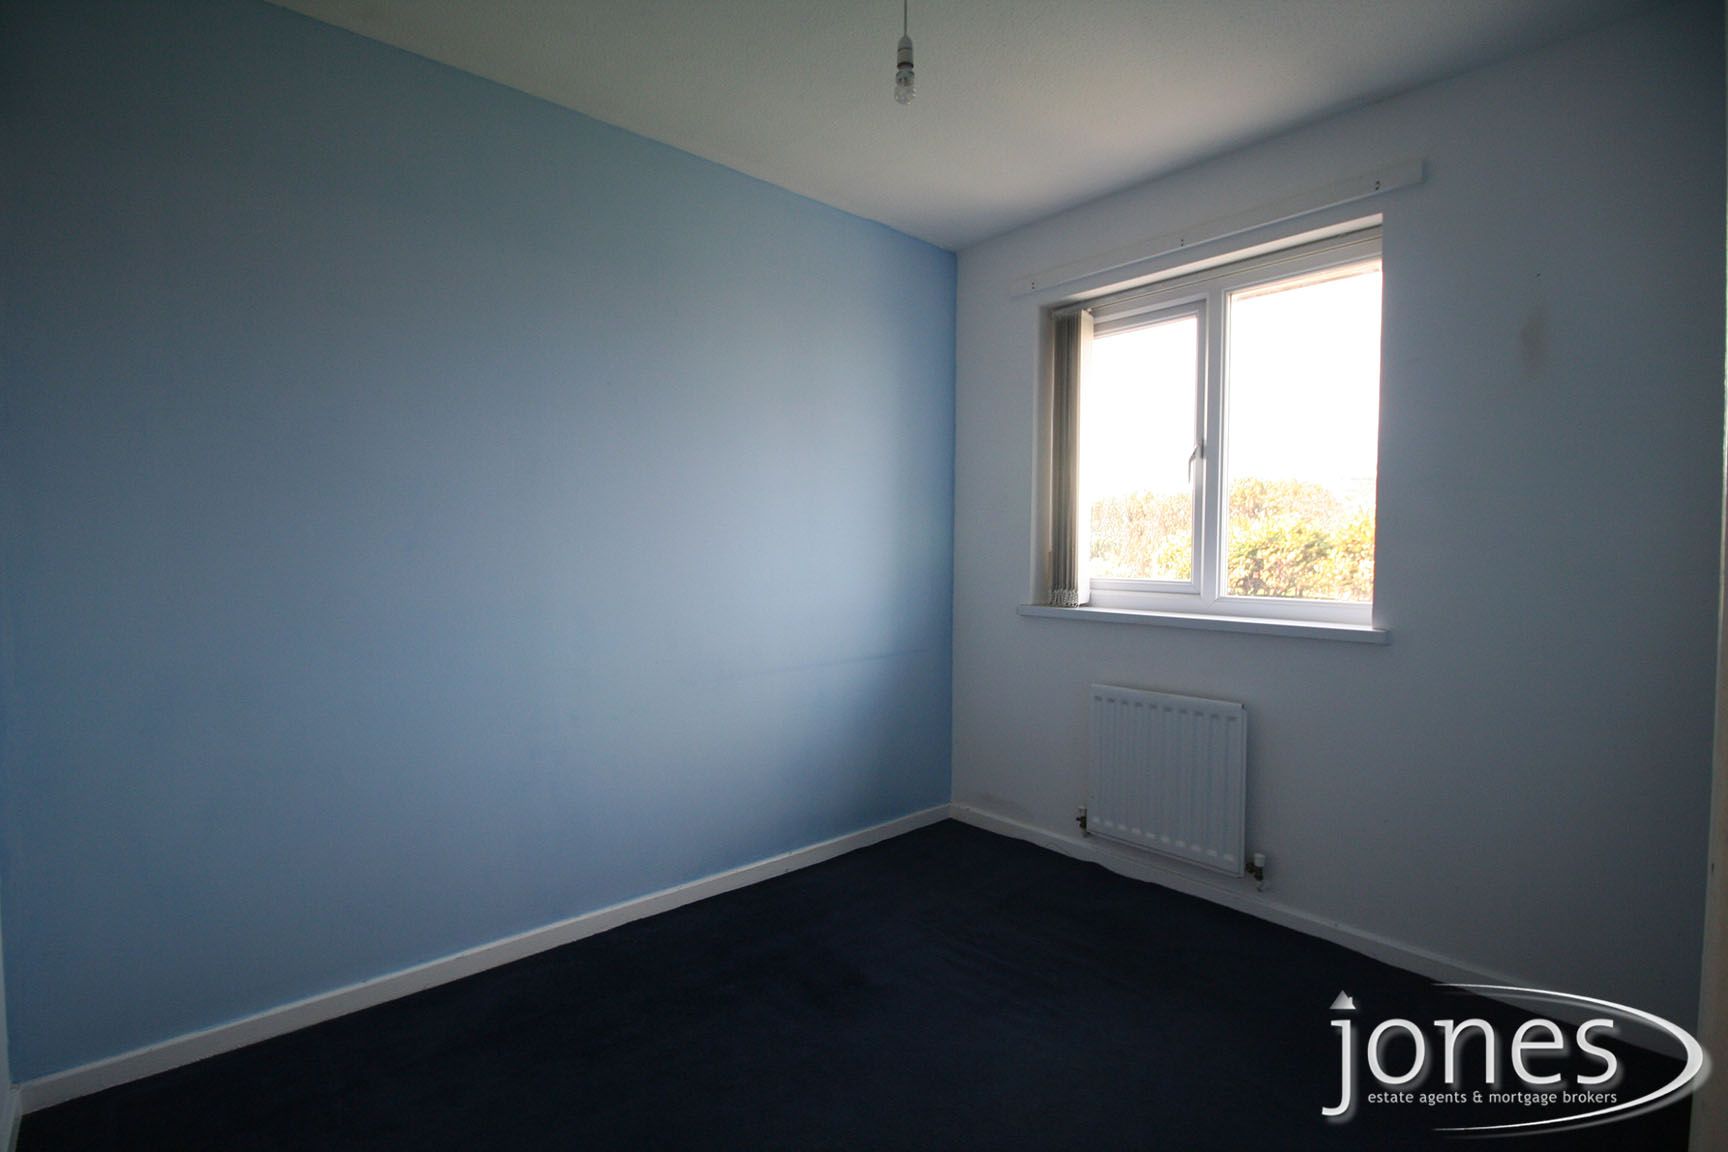 Home for Sale Let - Photo 07 Gatesgarth Close,  Bakers Mead, Hartlepool, TS24 8RB